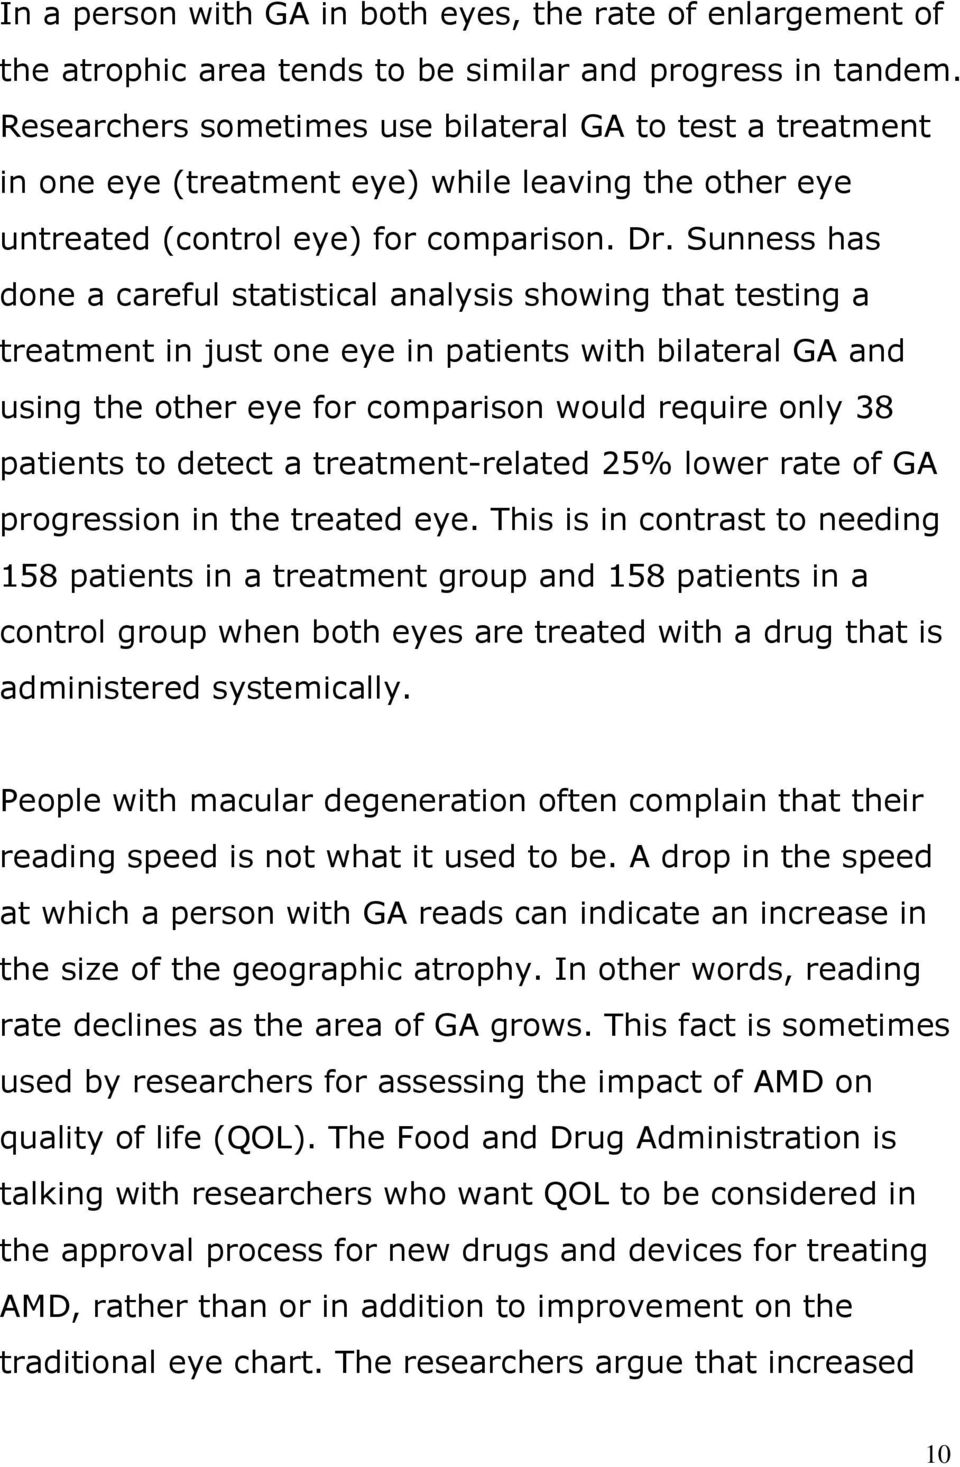 Sunness has done a careful statistical analysis showing that testing a treatment in just one eye in patients with bilateral GA and using the other eye for comparison would require only 38 patients to